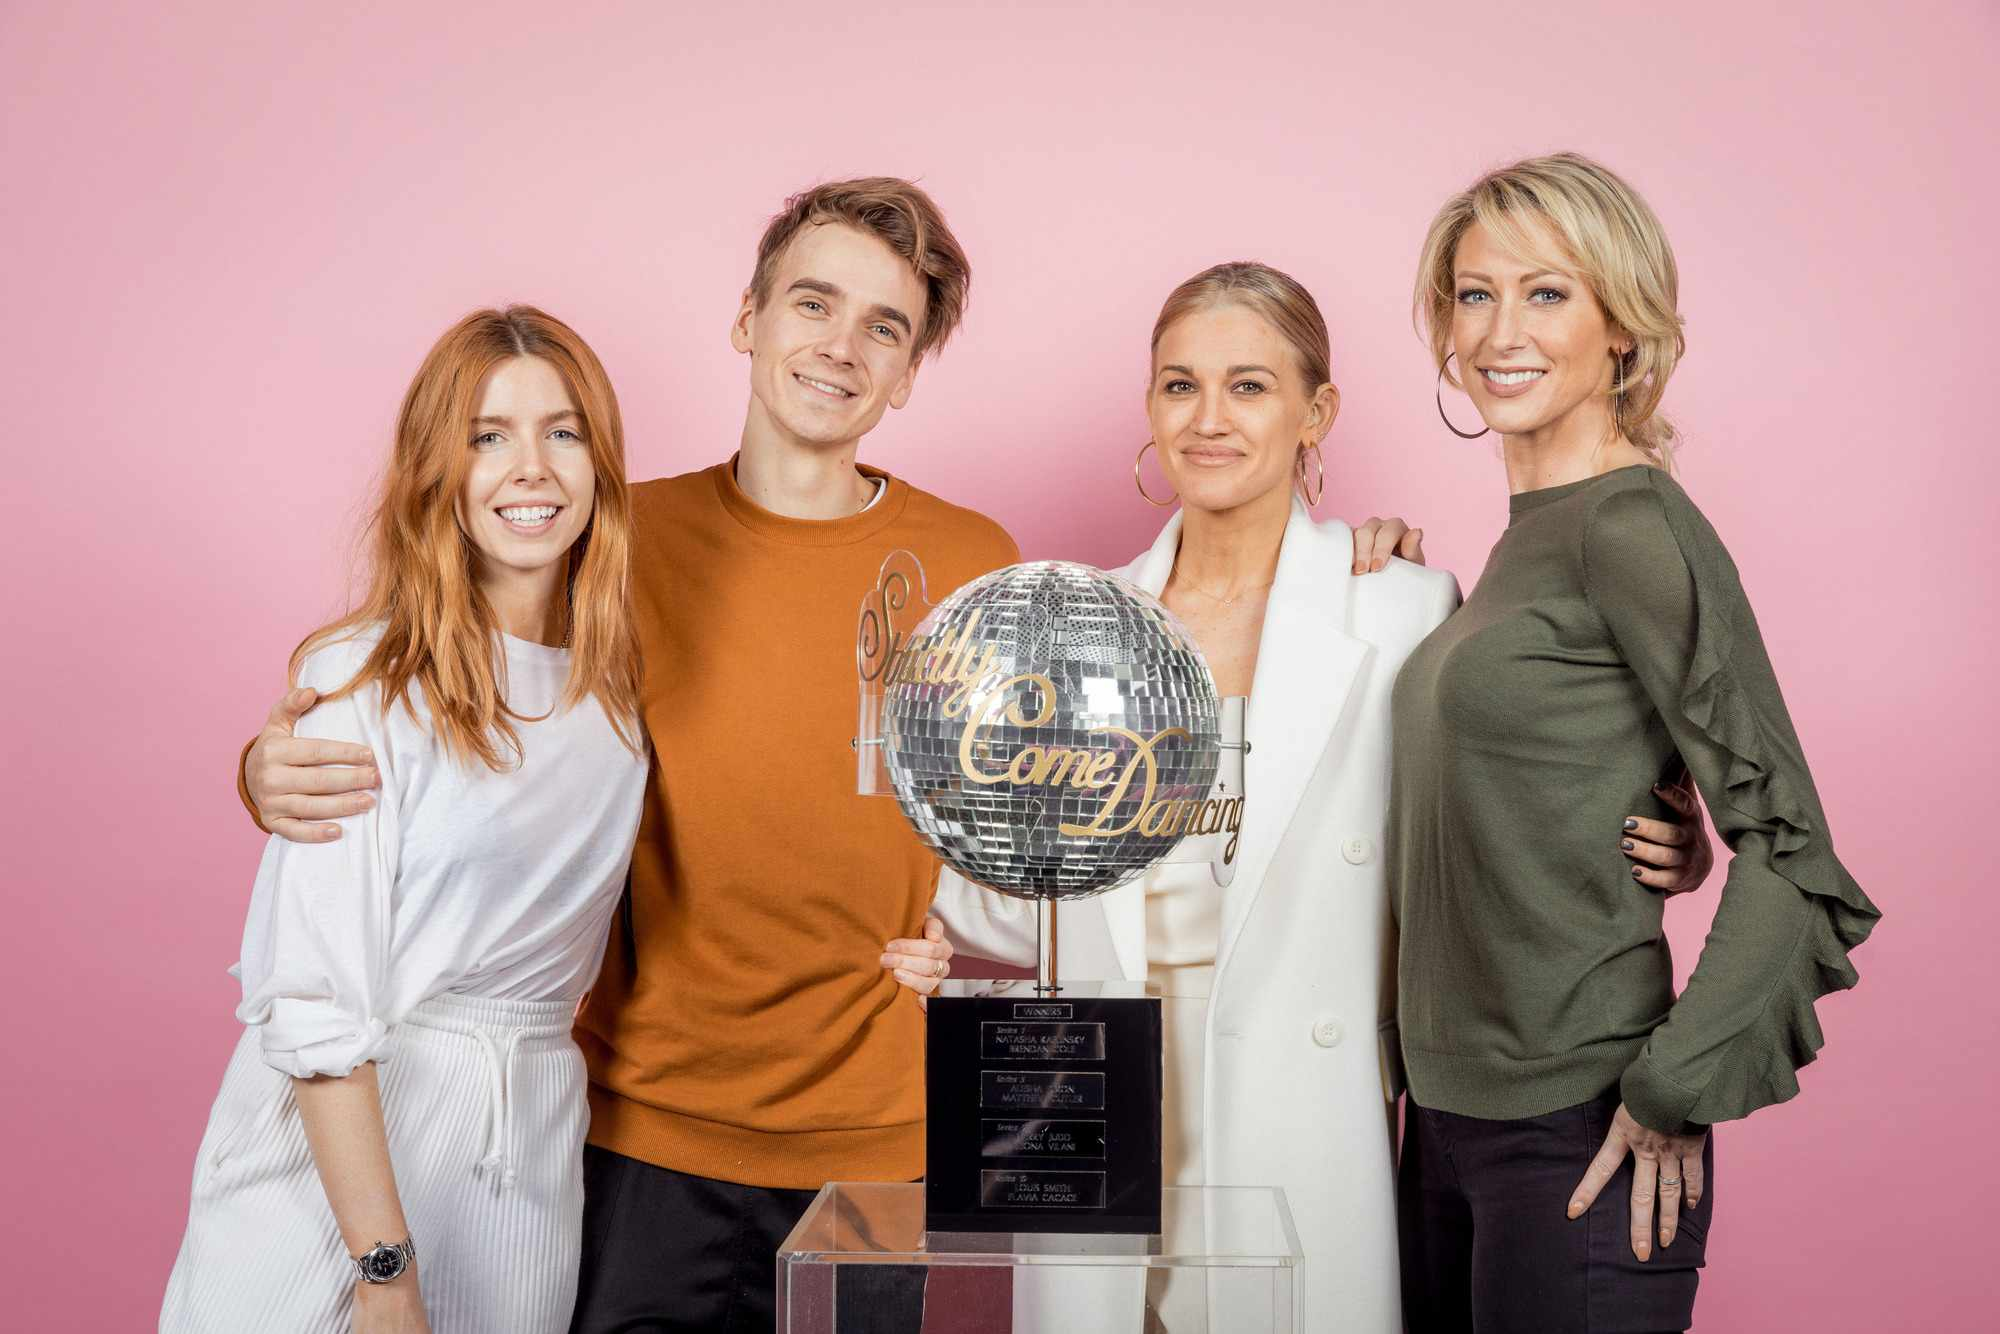 Strictly 2018 finalists Stacey Dooley, Joe Sugg, Ashley Roberts and Faye Tozer (BBC)